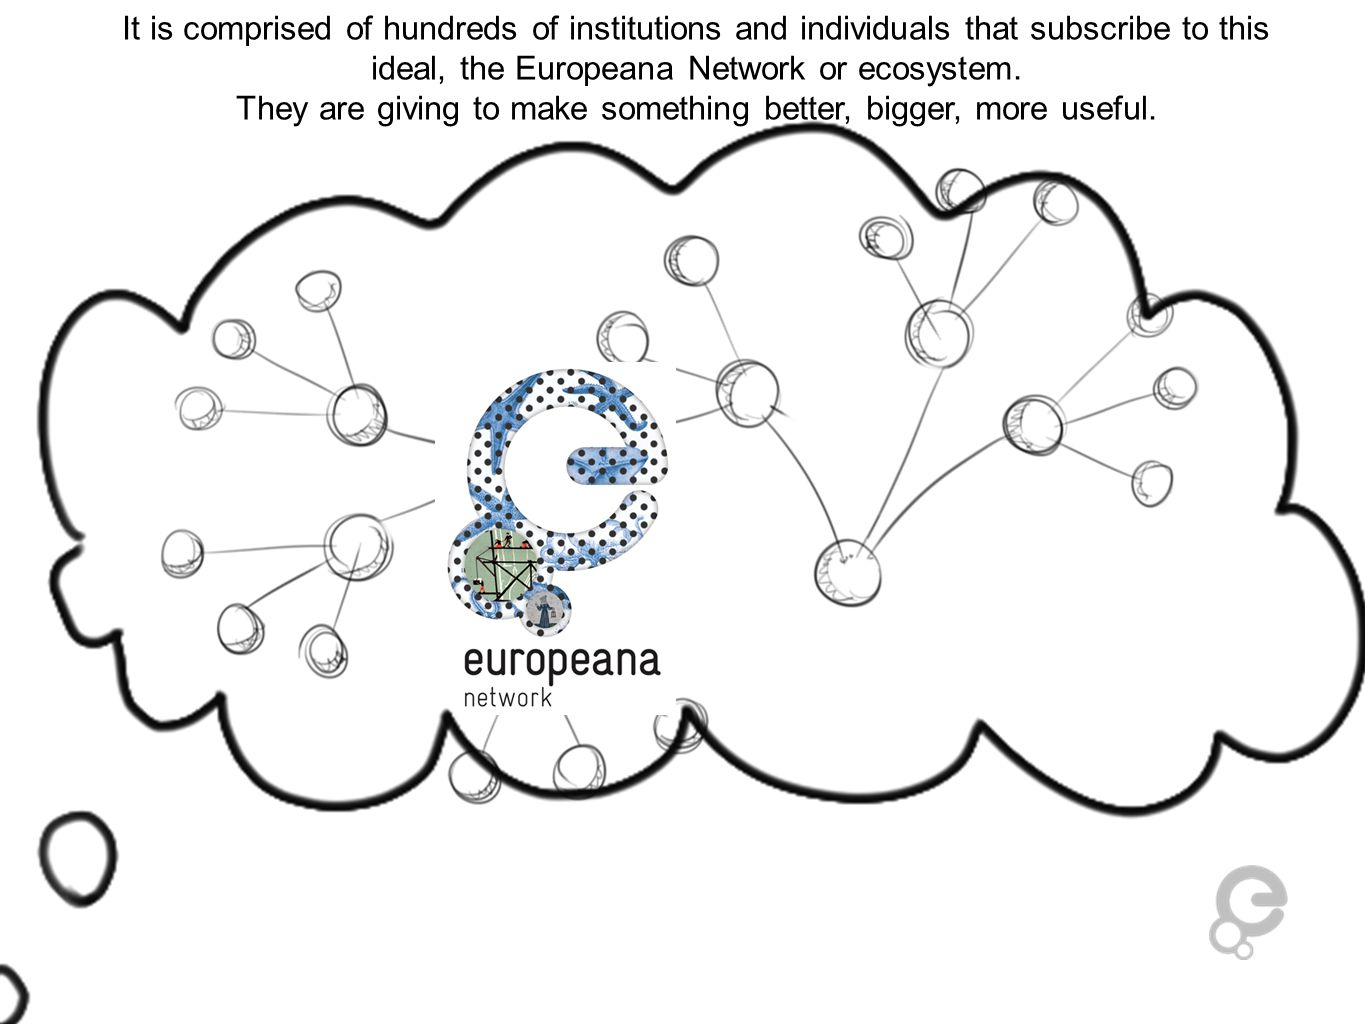 It is comprised of hundreds of institutions and individuals that subscribe to this ideal, the Europeana Network or ecosystem. They are giving to make